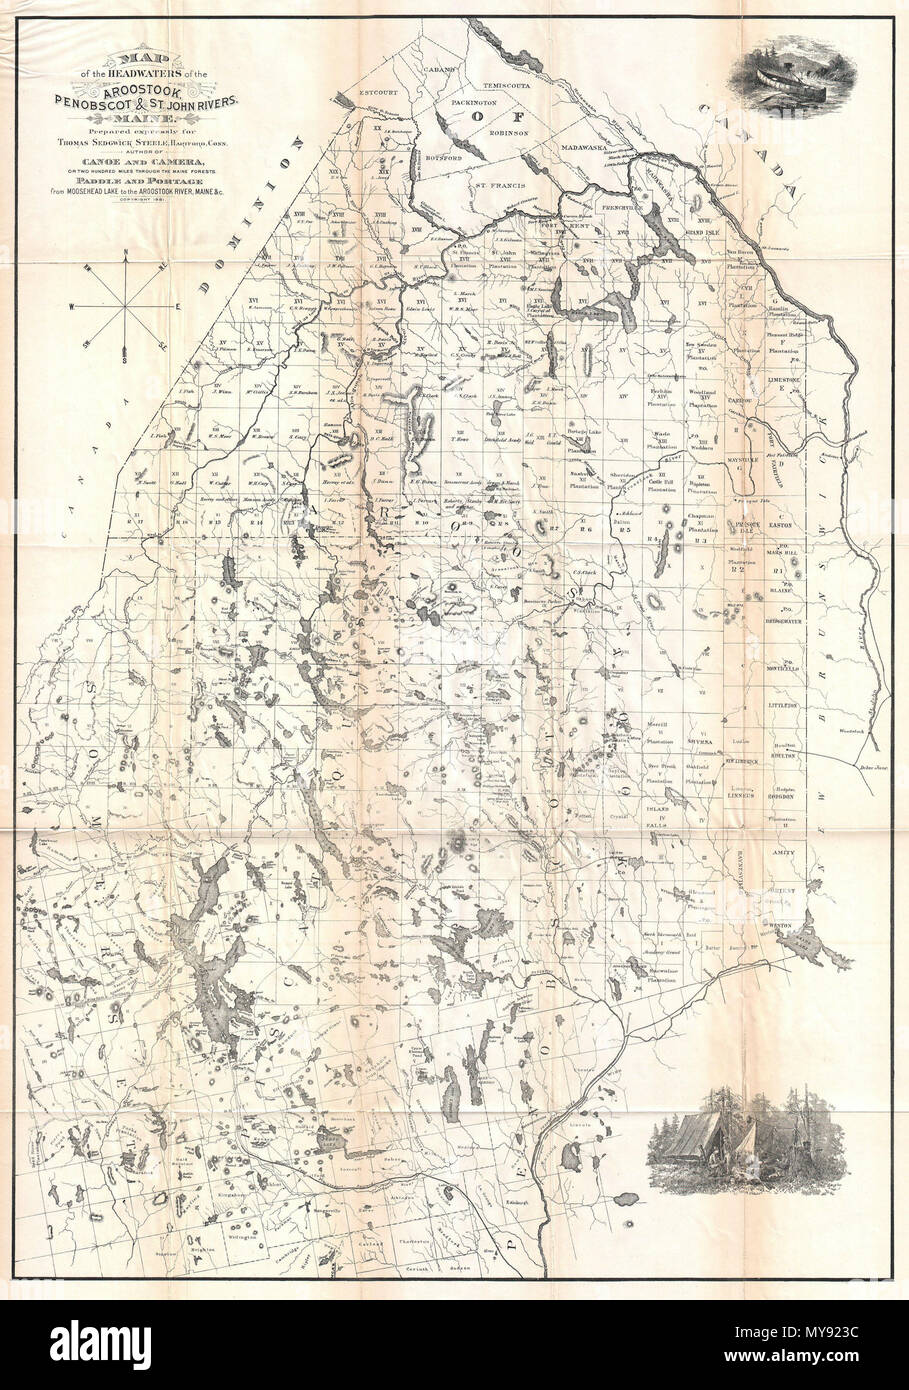 St John River Maine Map.Map Of The Headwaters Of The Aroostook Penobscot St John Rivers